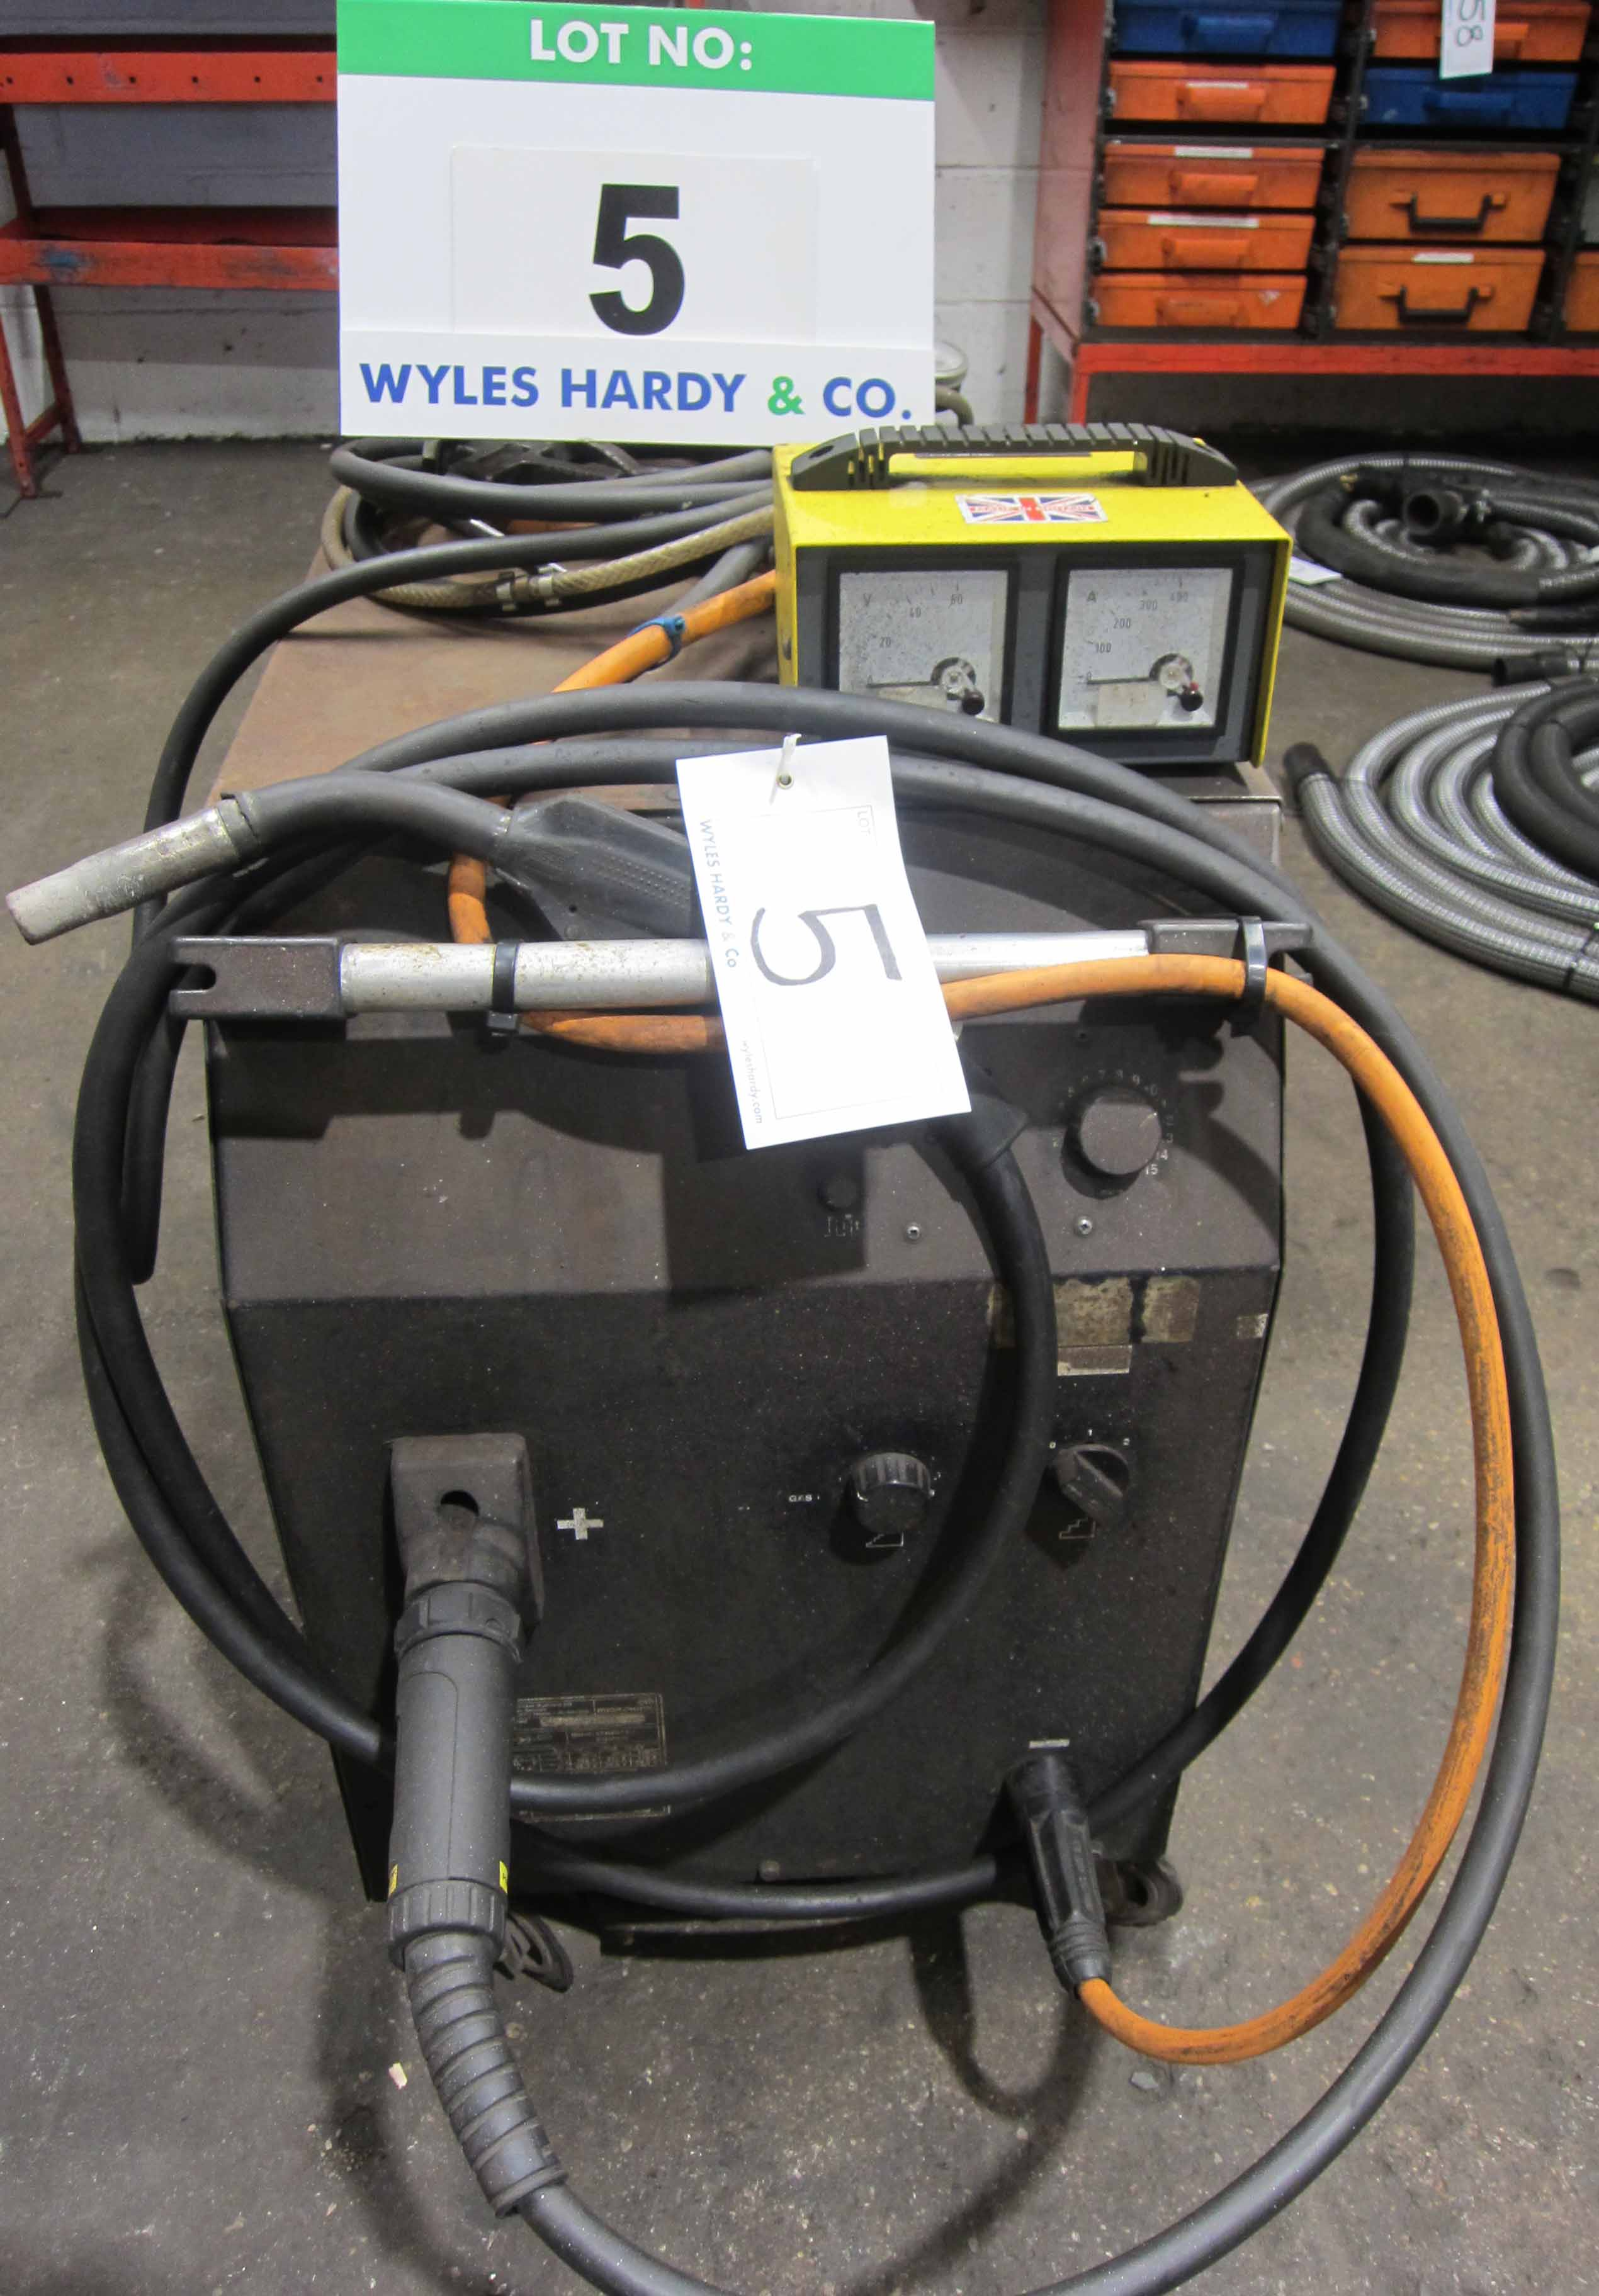 A MIGTRONIC Model Mig 300 Mig Welder complete with QUALITRONICS Voltage and Amp Meters and Gun,